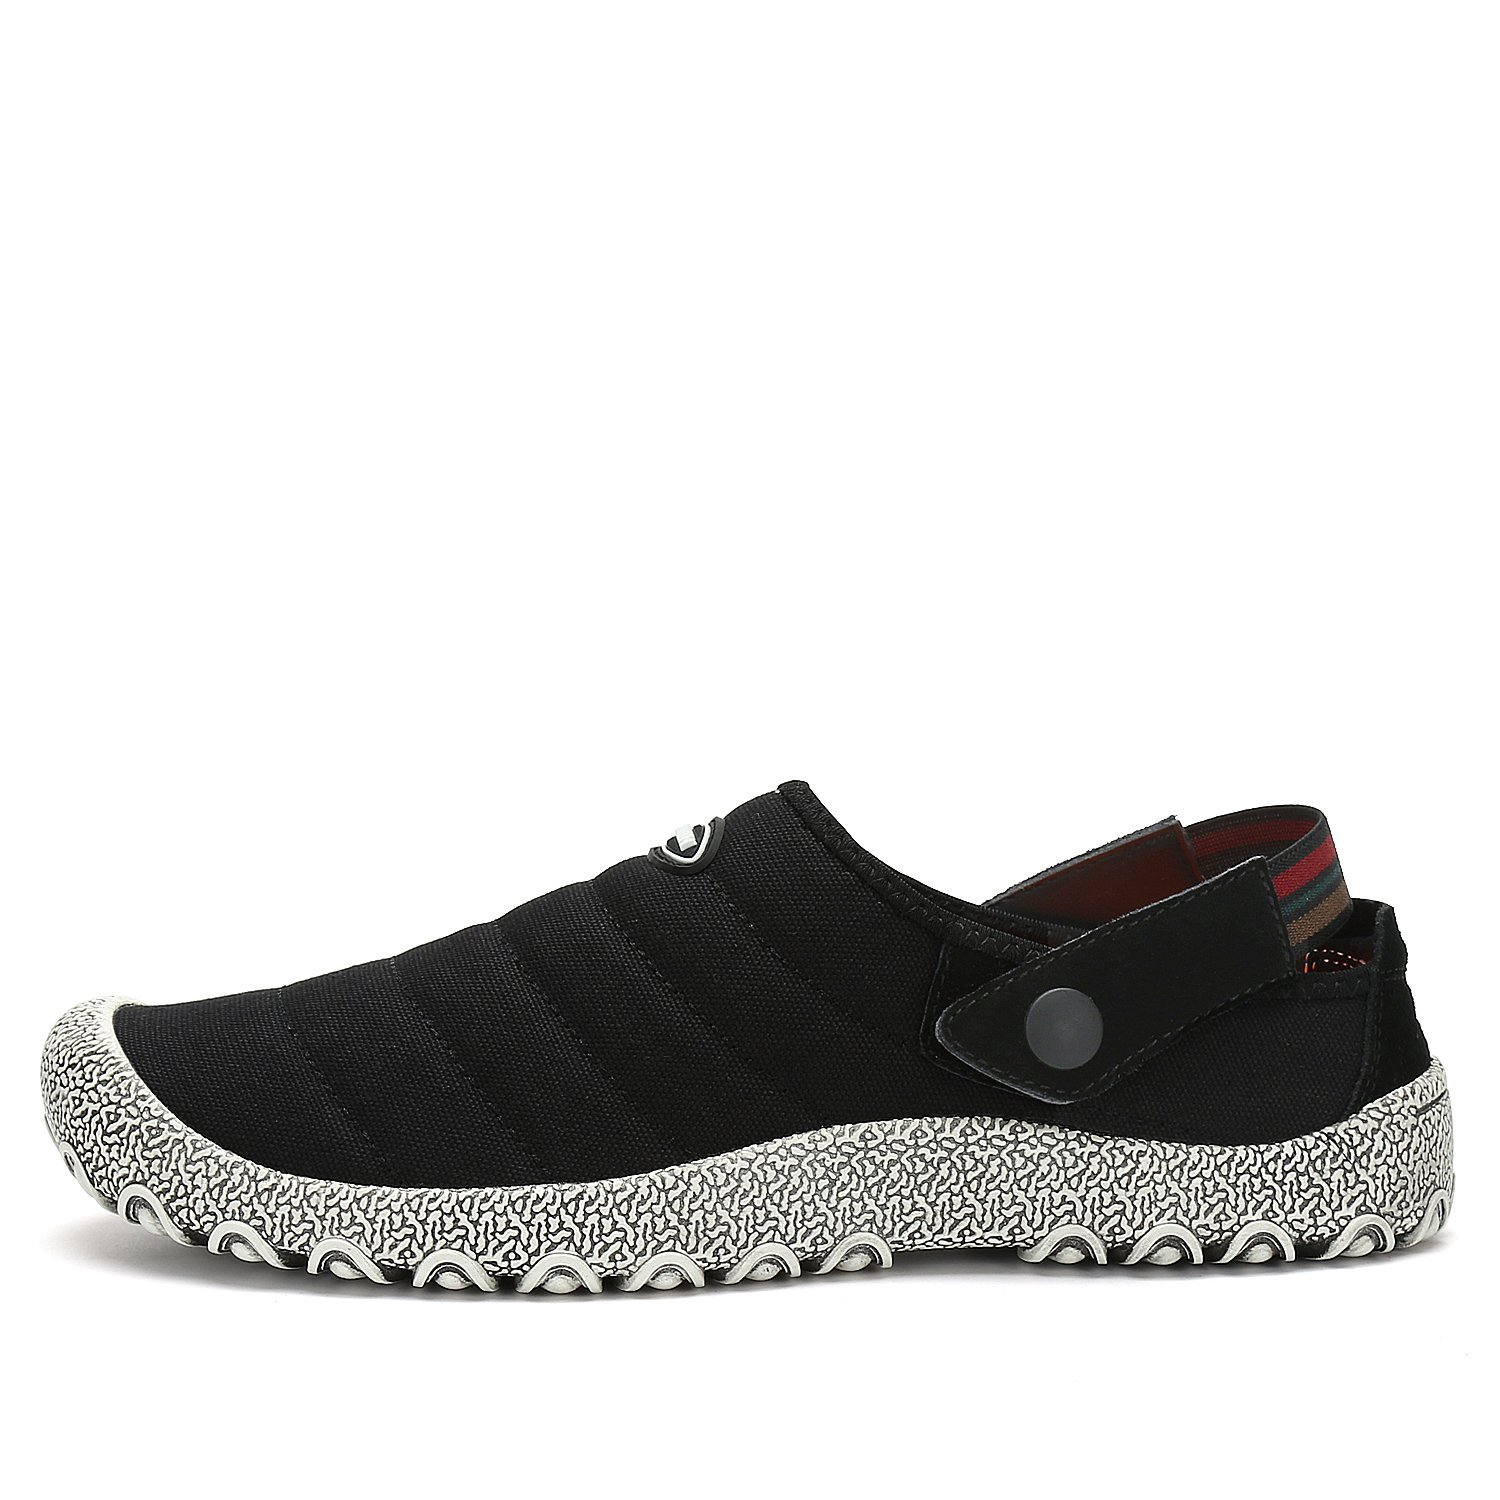 Leaproo Slippers for Mens Canvas Sneakers Women Slip On Low-Top Casual Shoes Clog Mule Indoor Outdoor Walking Sandals for Unisex Black-39